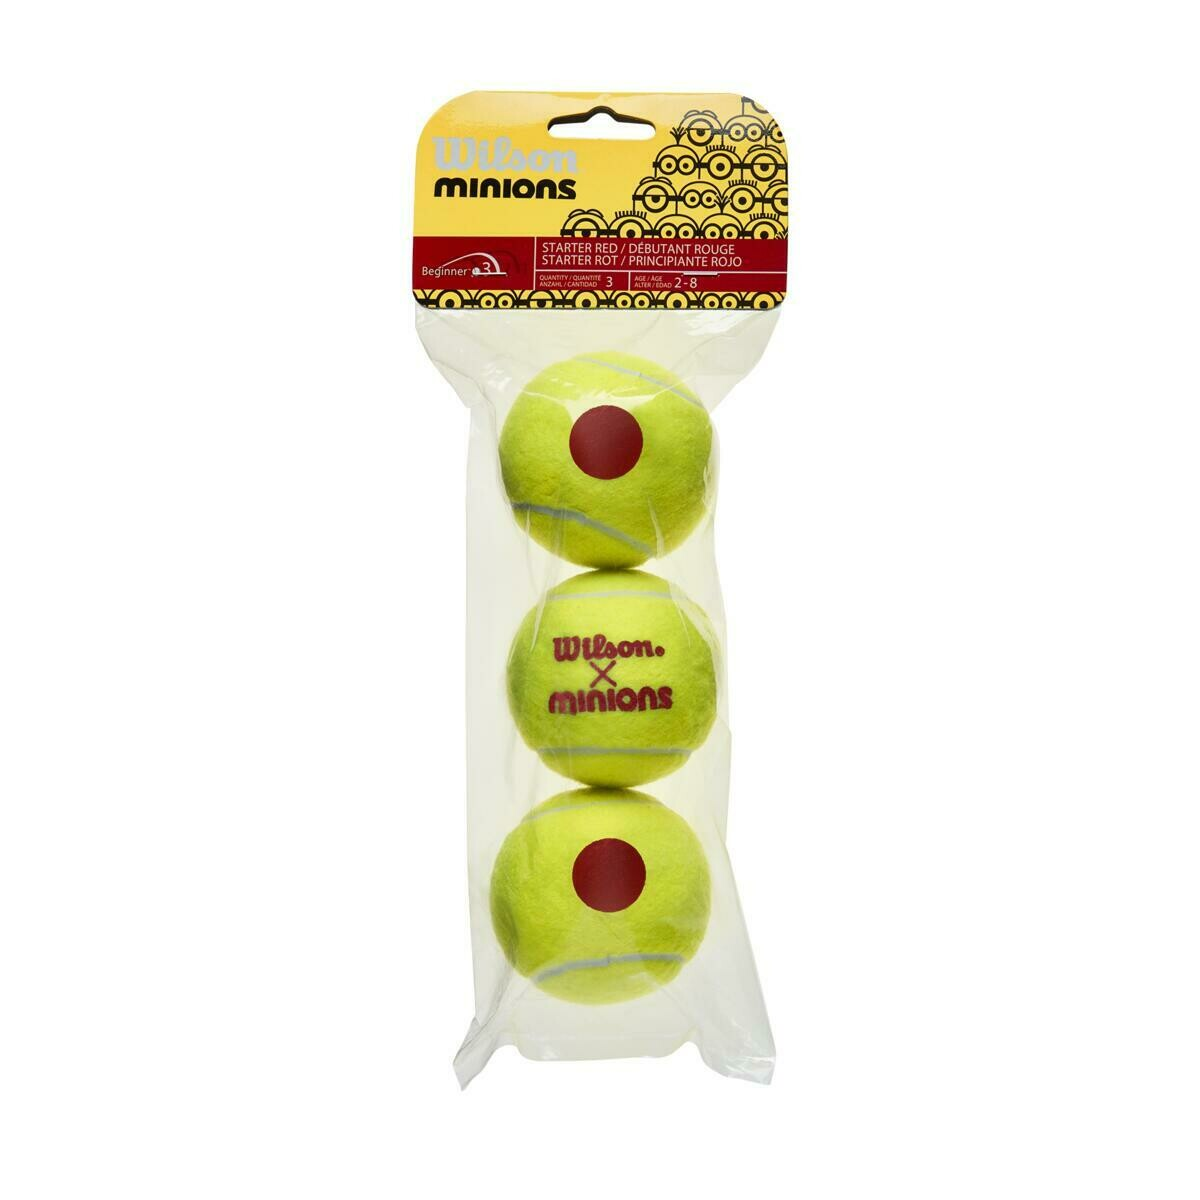 Wilson Minions Stage 3 Tennis Balls - 3 Pack